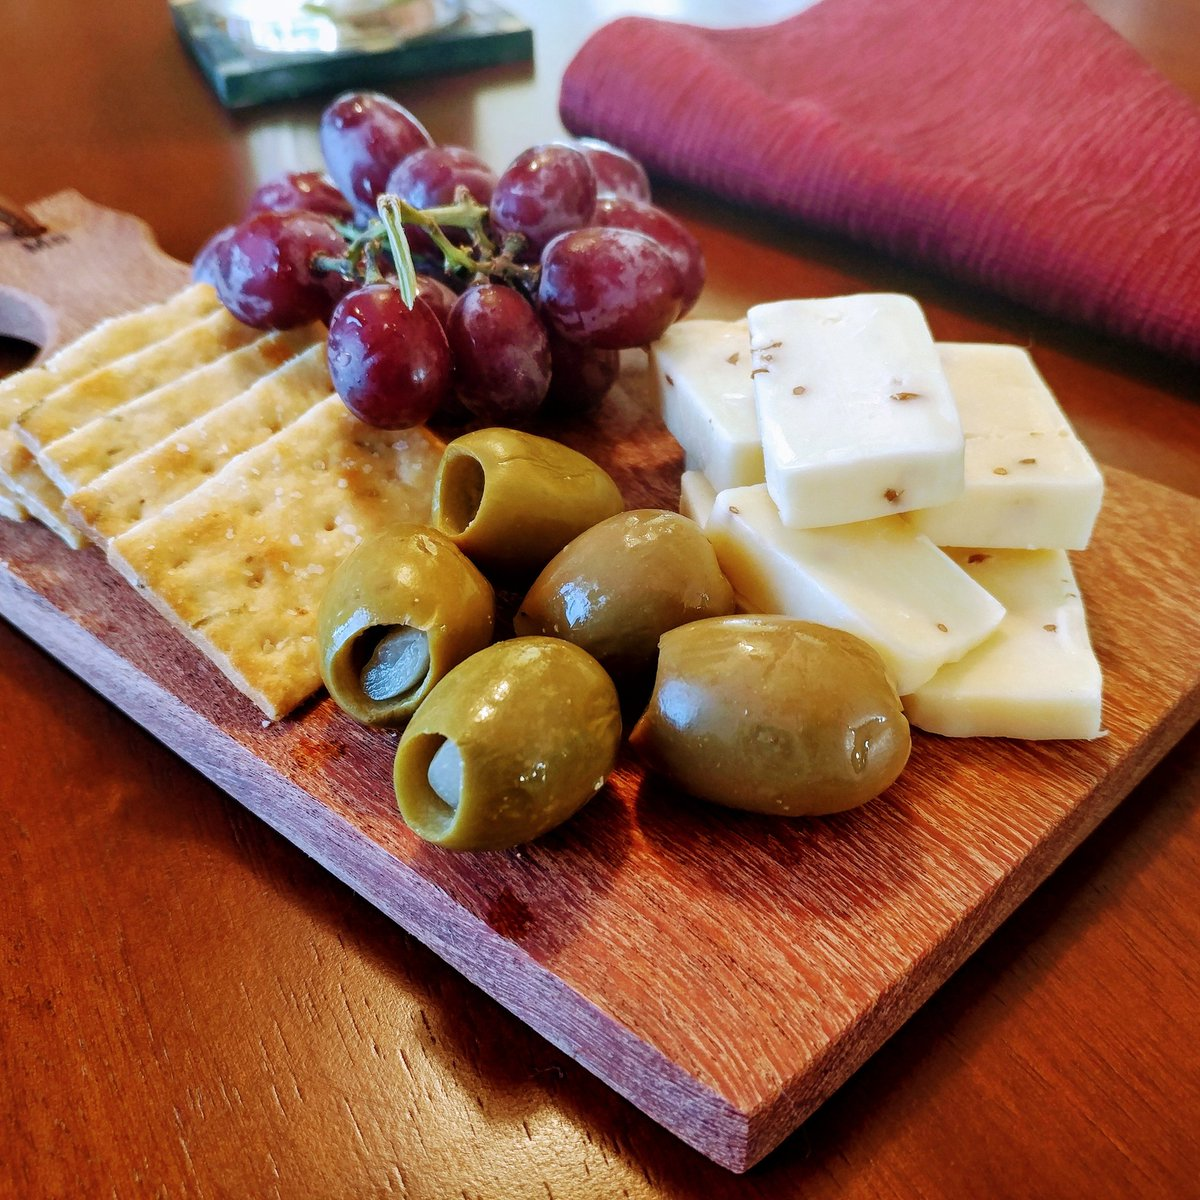 An itty-bitty cheese board w/ crackers, garlic stuffed olives &amp; red grapes.  #FoxyCuisine #cheeseboard #crackers #cheese #olives #grapes<br>http://pic.twitter.com/NMPuGBAVhf